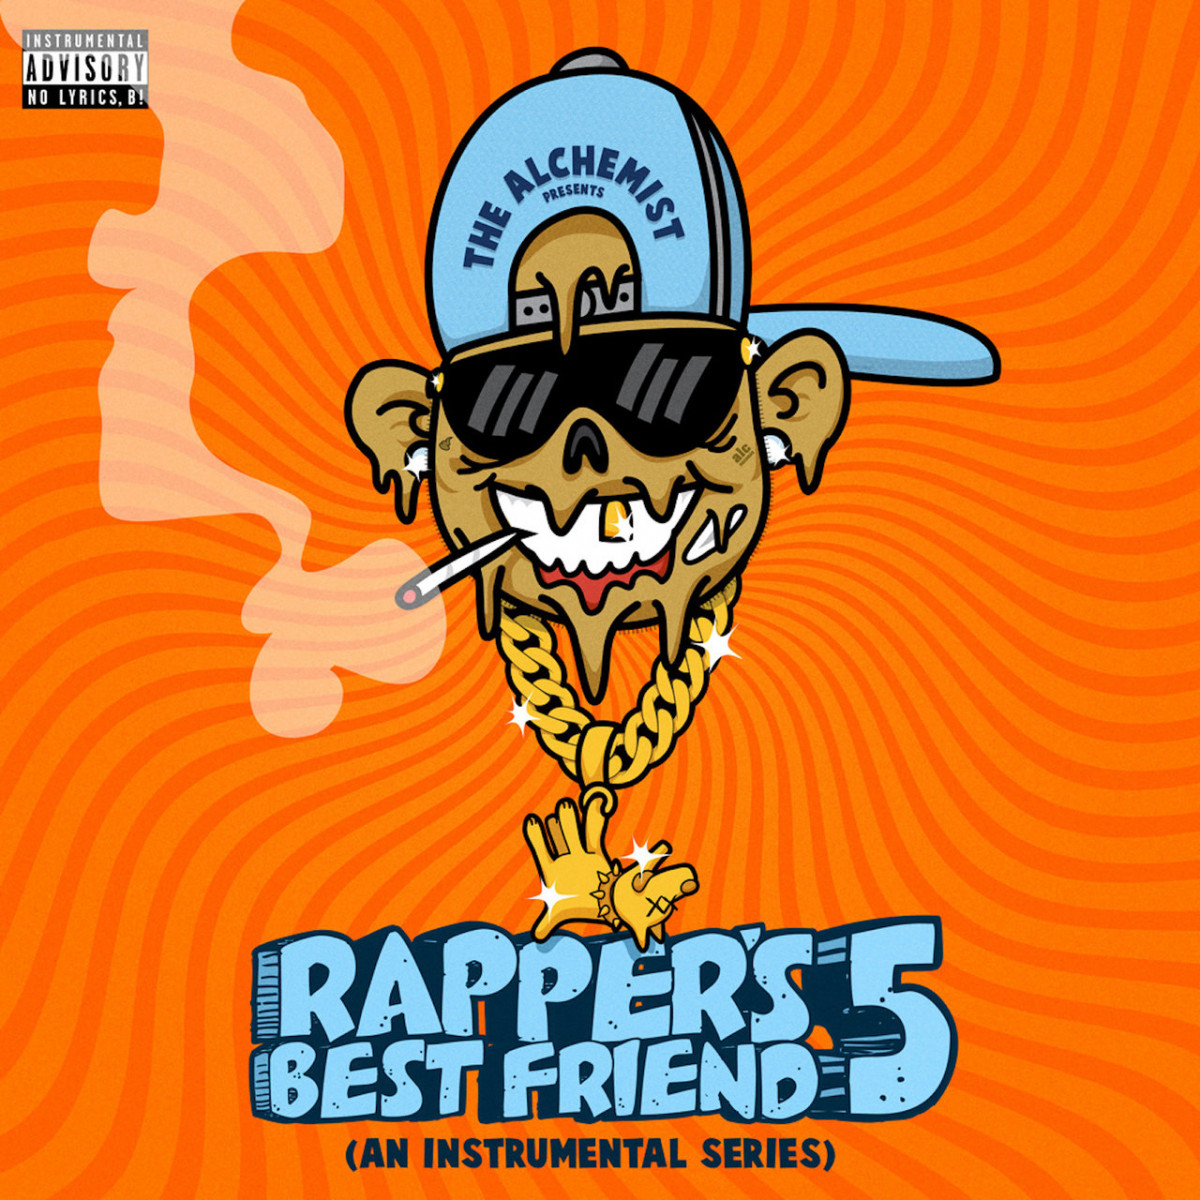 The Alchemist — «Rapper's Best Friend 5 (An Instrumental Series)»